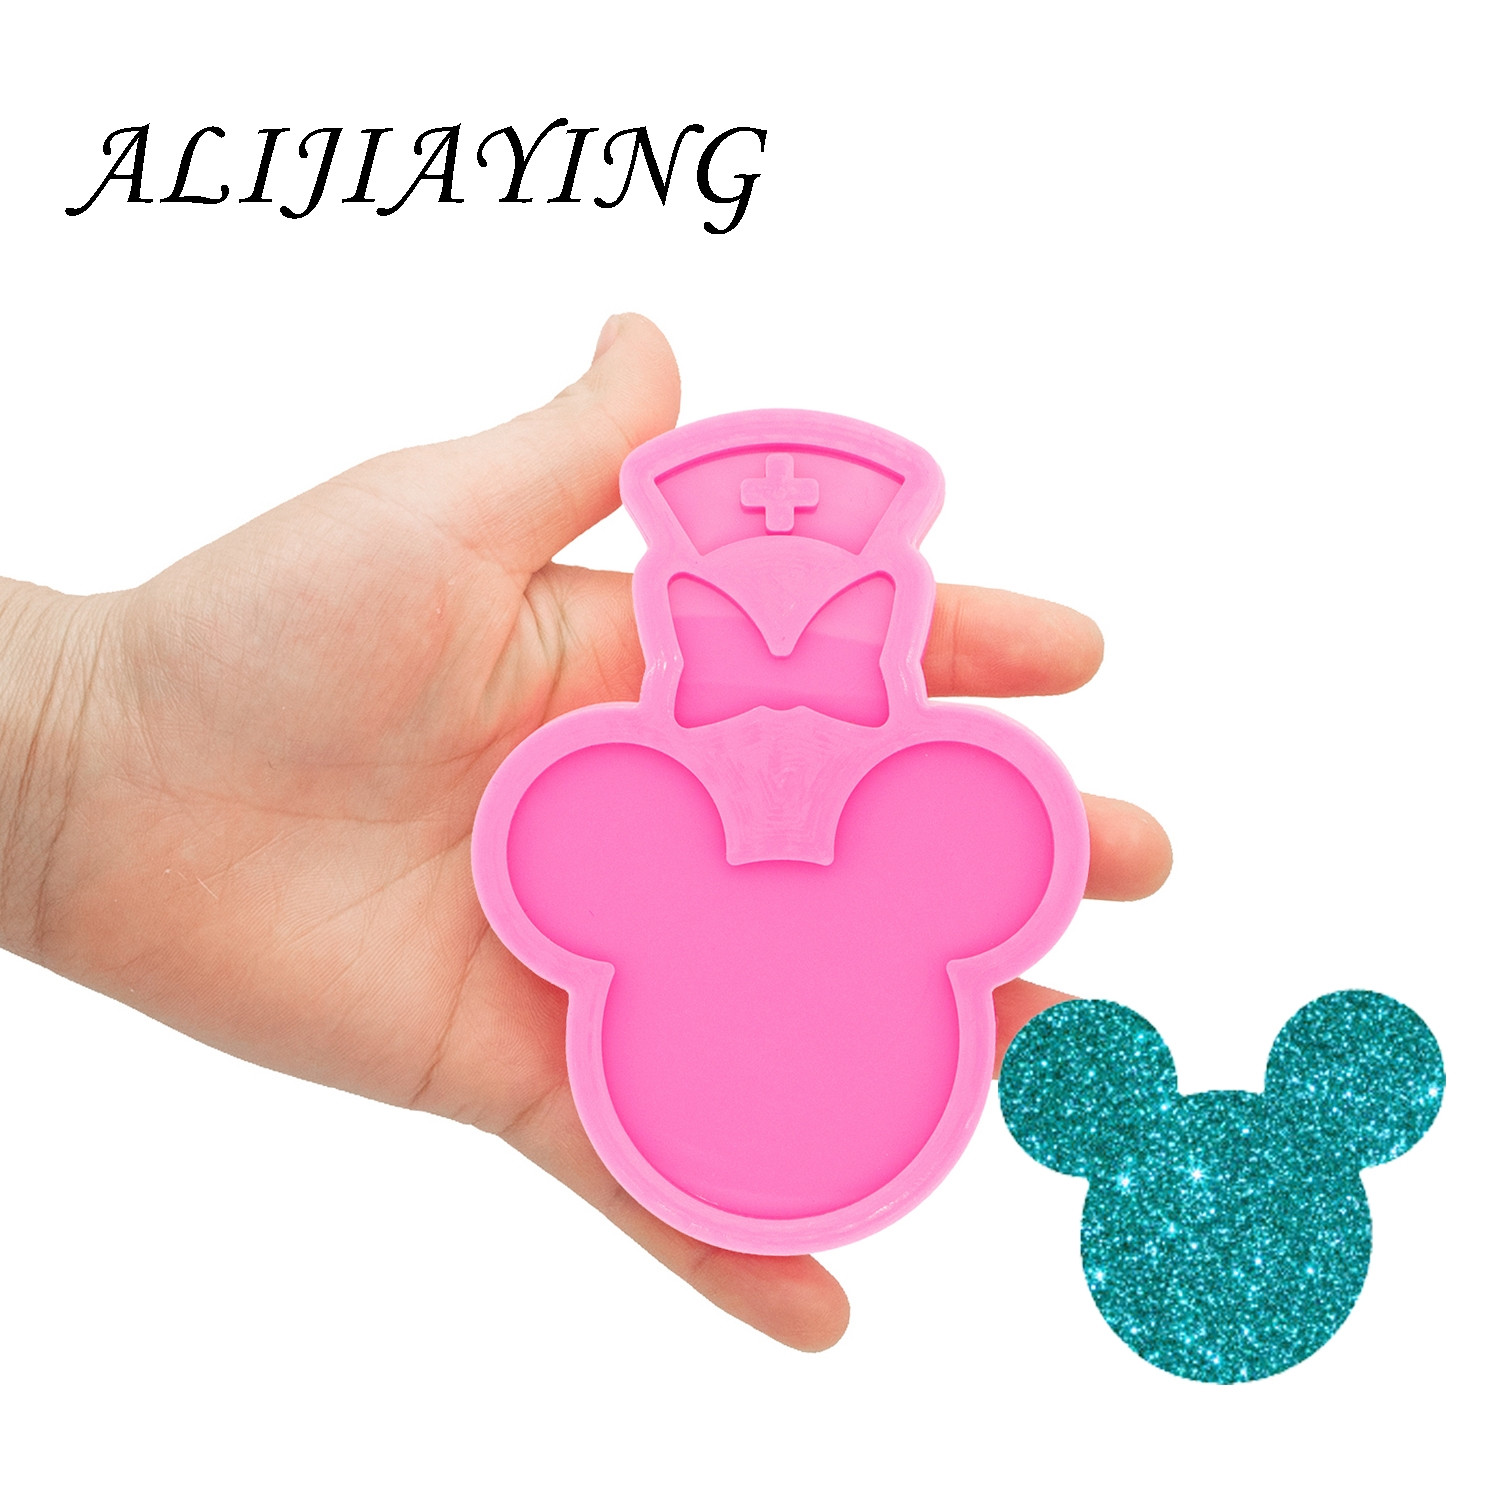 Mouse Head Silicone Mould Epoxy Craft Molds Clay Resin DIY for Badge Reel DY0075